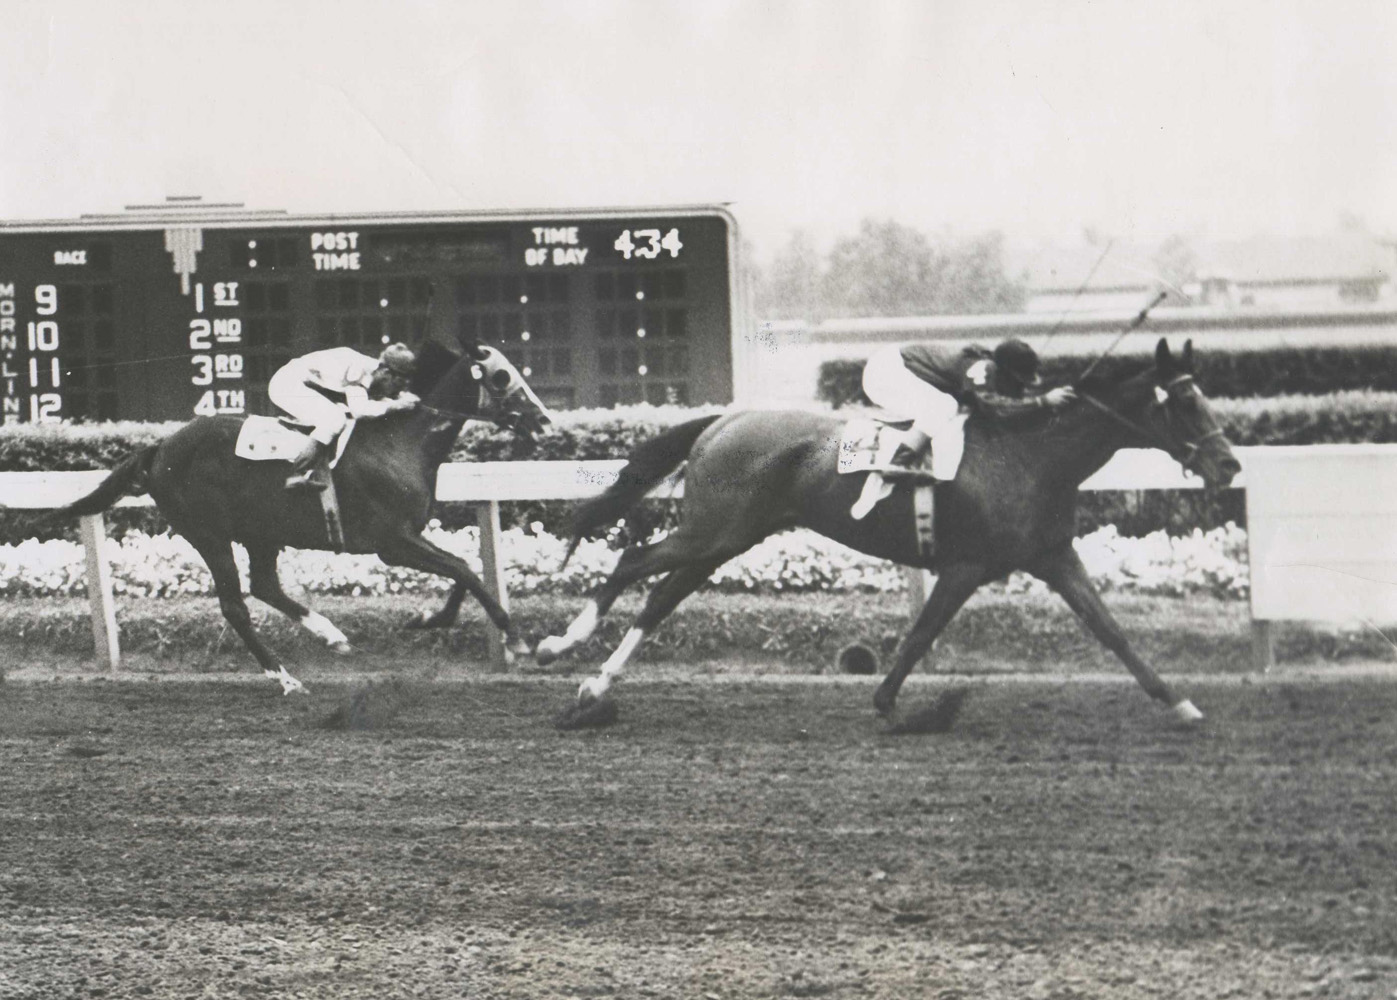 Two Lea (Steve Brooks up) winning the 1949 Artful Stakes at Washington Park (Washington Park Photo/Museum Collection)